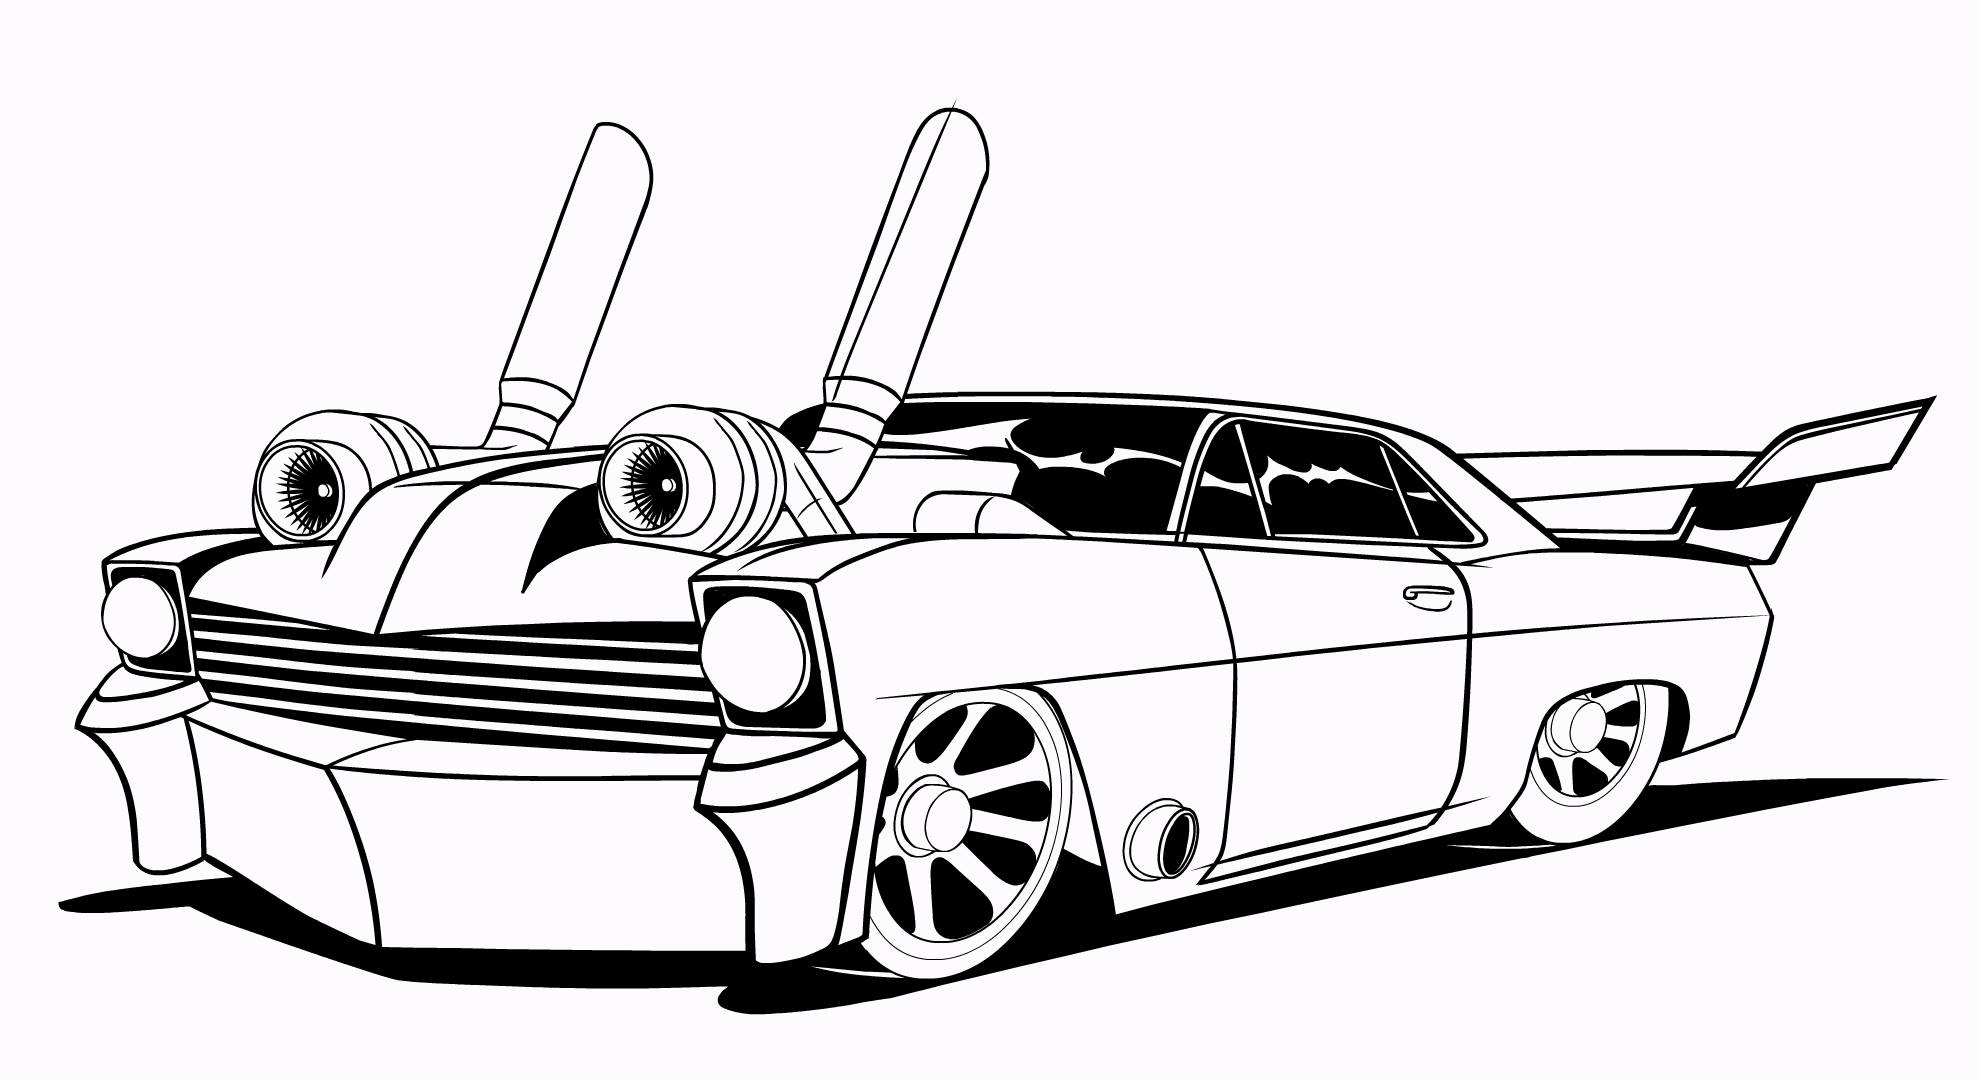 1980x1080 Twin Turbo My Drawings Twin Turbo And Drawings